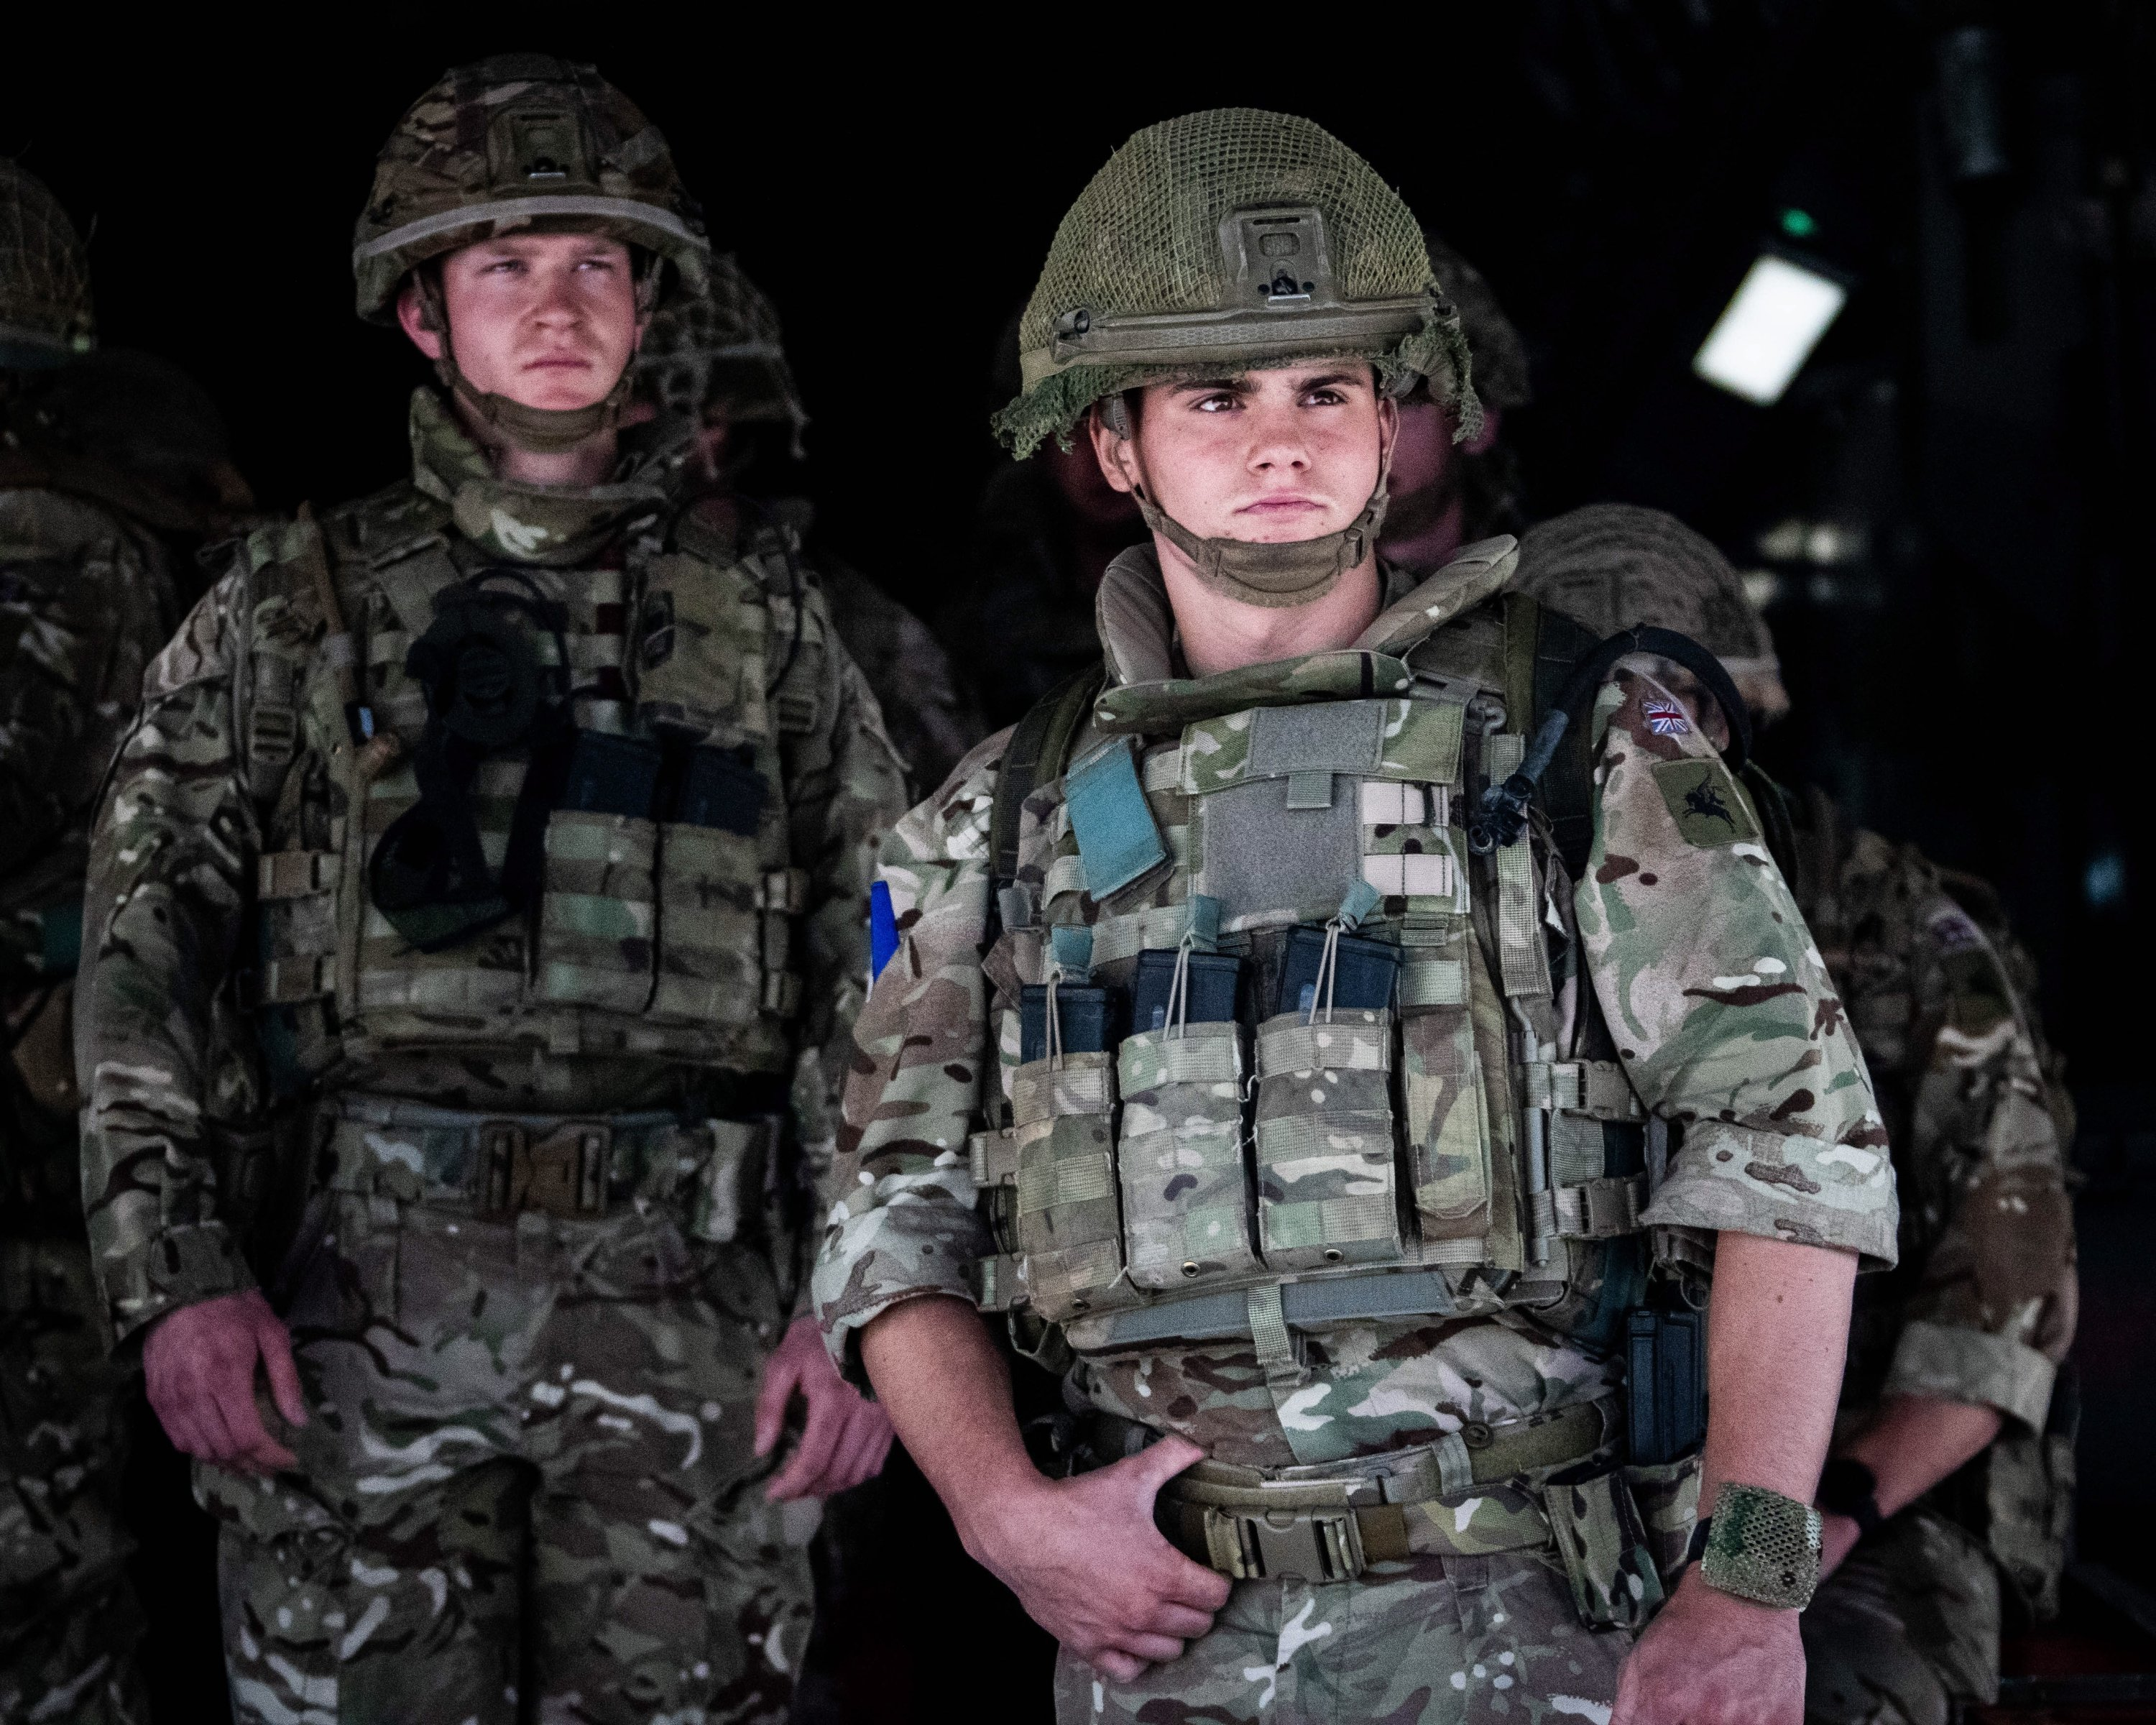 British Forces from 16 Air Assault Brigade on arrival in Kabul, Afghanistan, Aug. 15, 2021. (EPA Photo)